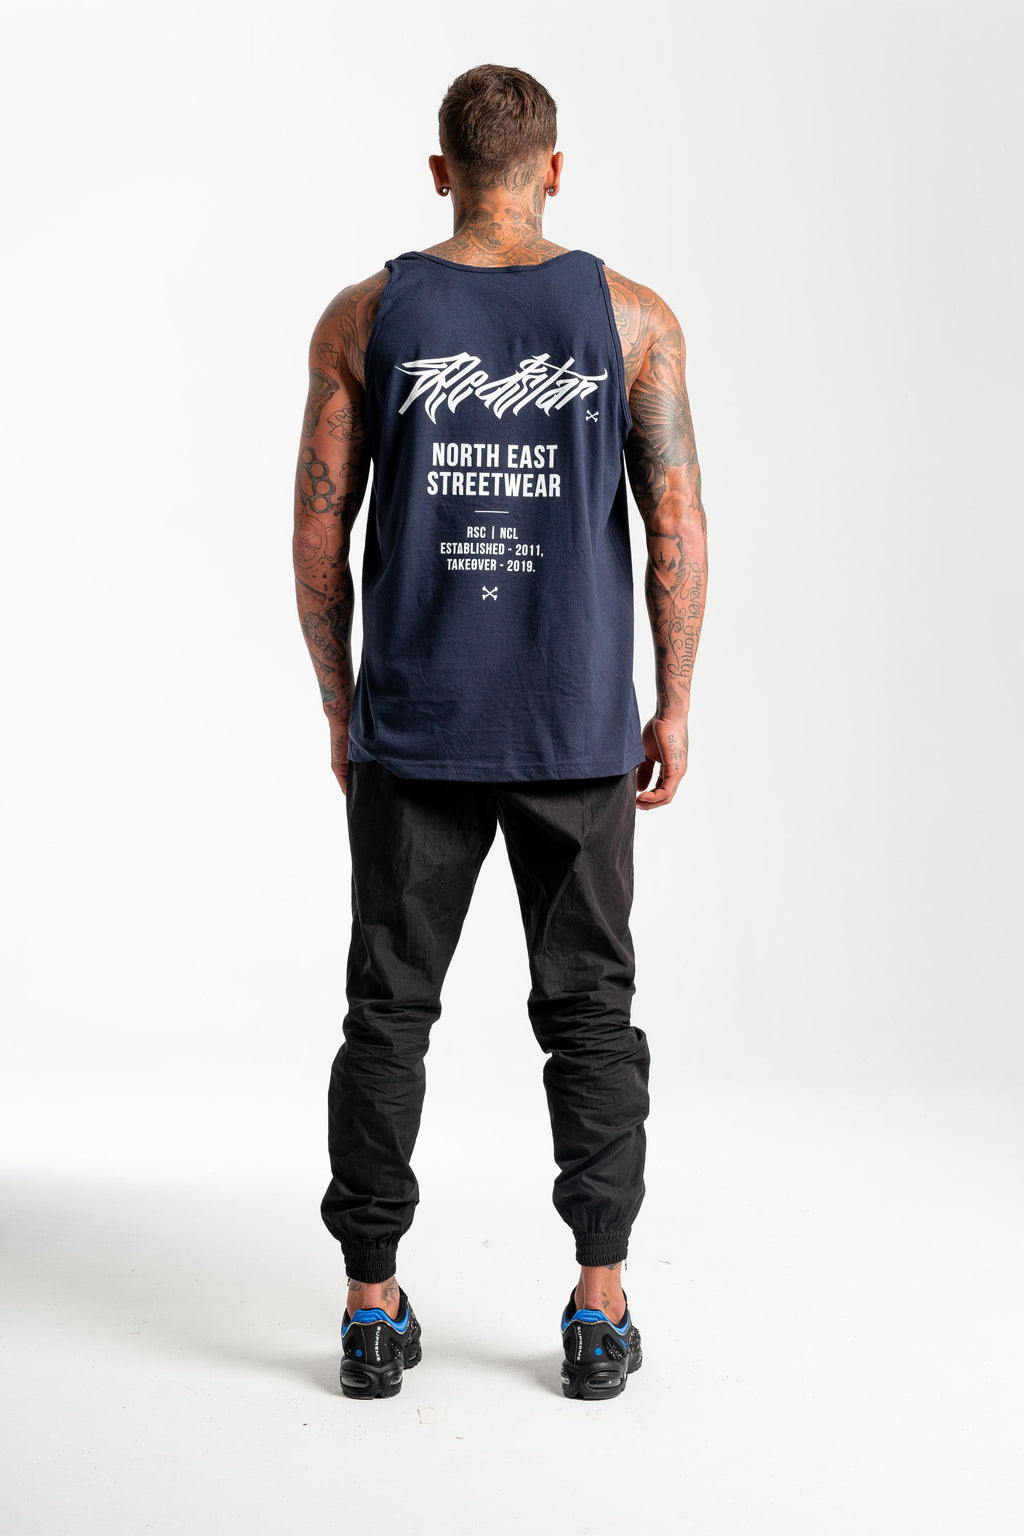 Tour Navy Vest - Back print